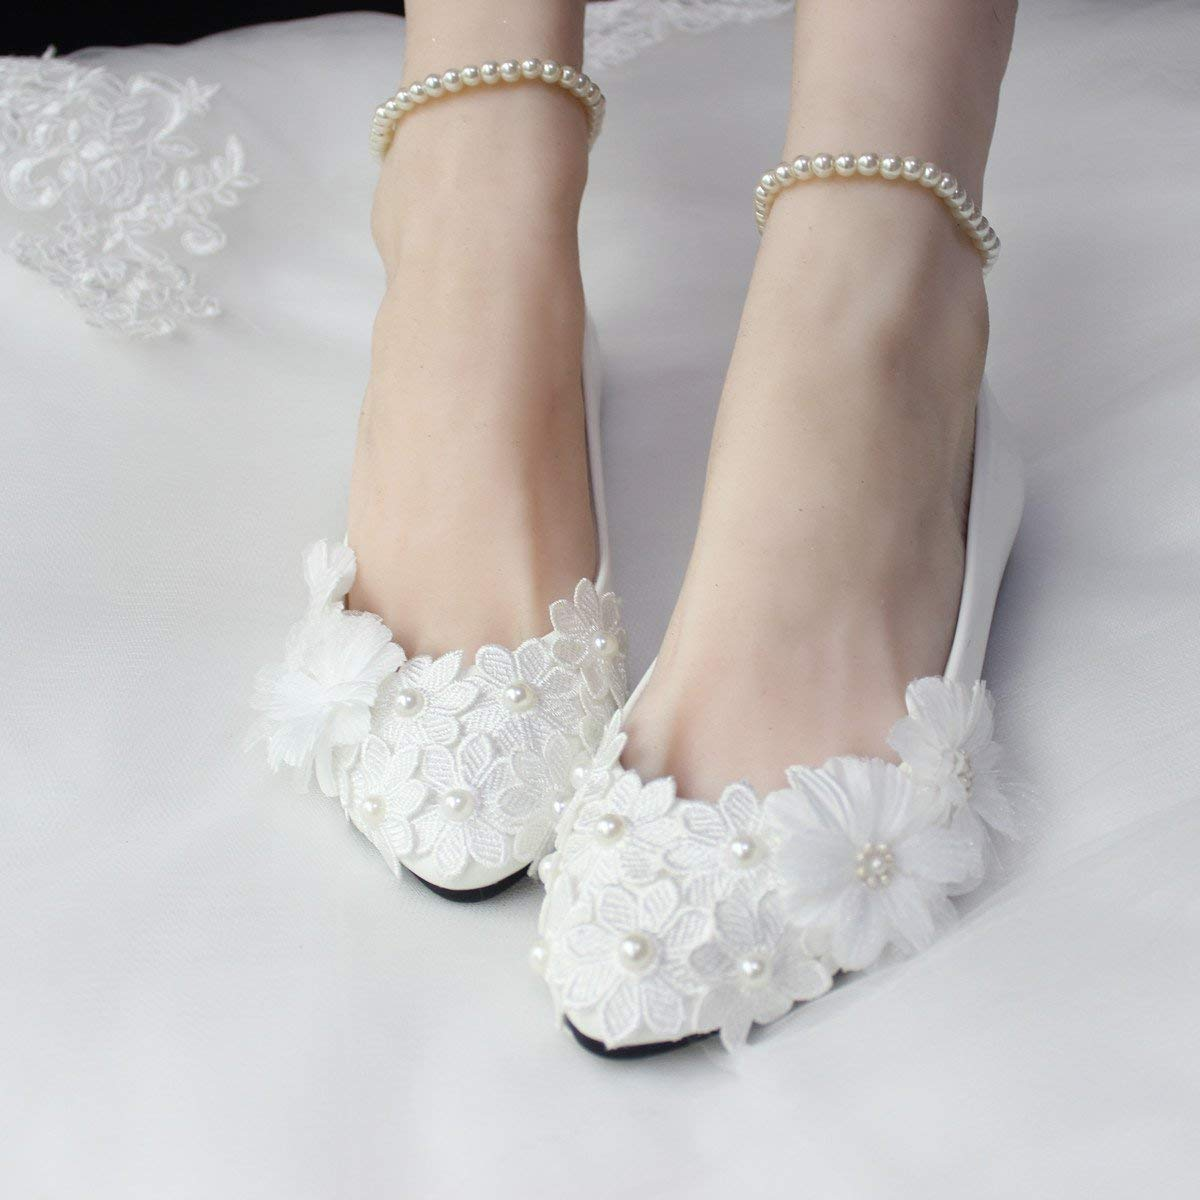 01d1d270e27 Amazon.com  2017 Stylish Pearls Flat Wedding Shoes For Bride 3D Floral  Appliqued Prom High Heels Plus Size Pointed Toe Lace Bridal Shoes  Handmade